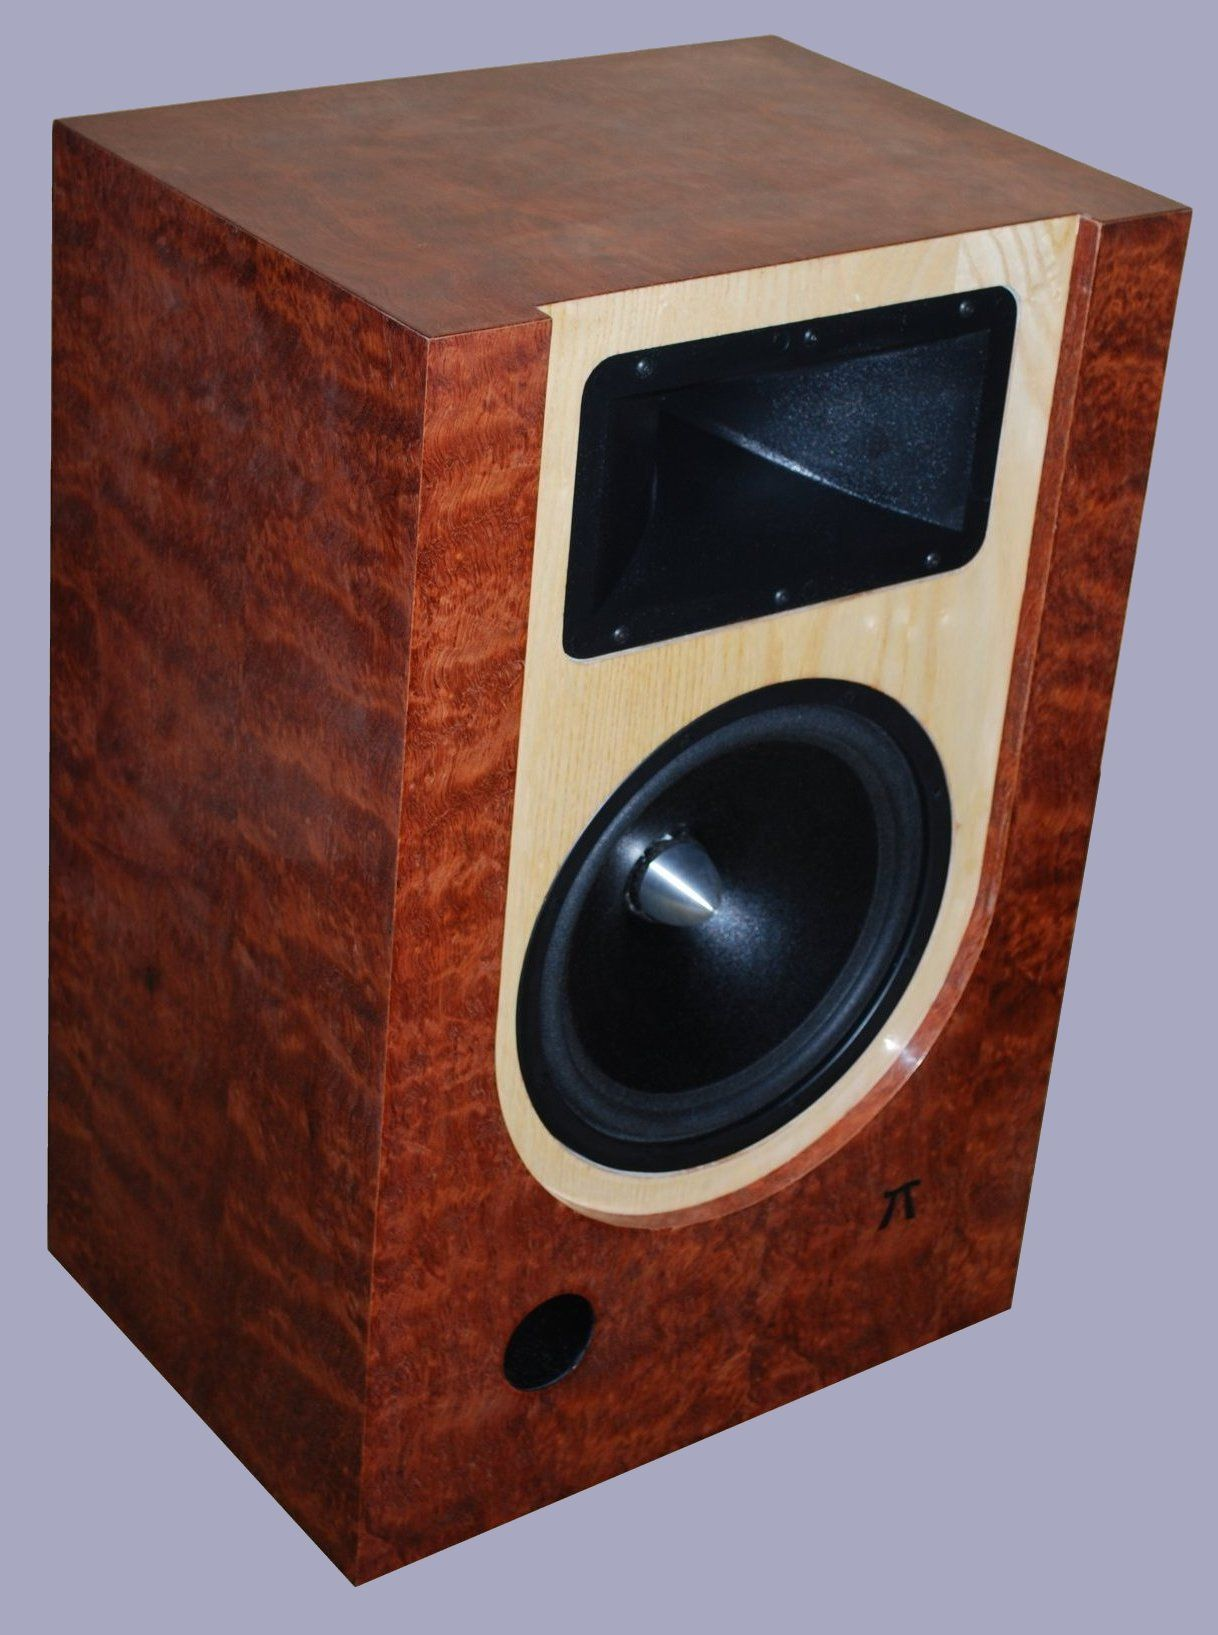 Great speaker kits at even better prices.